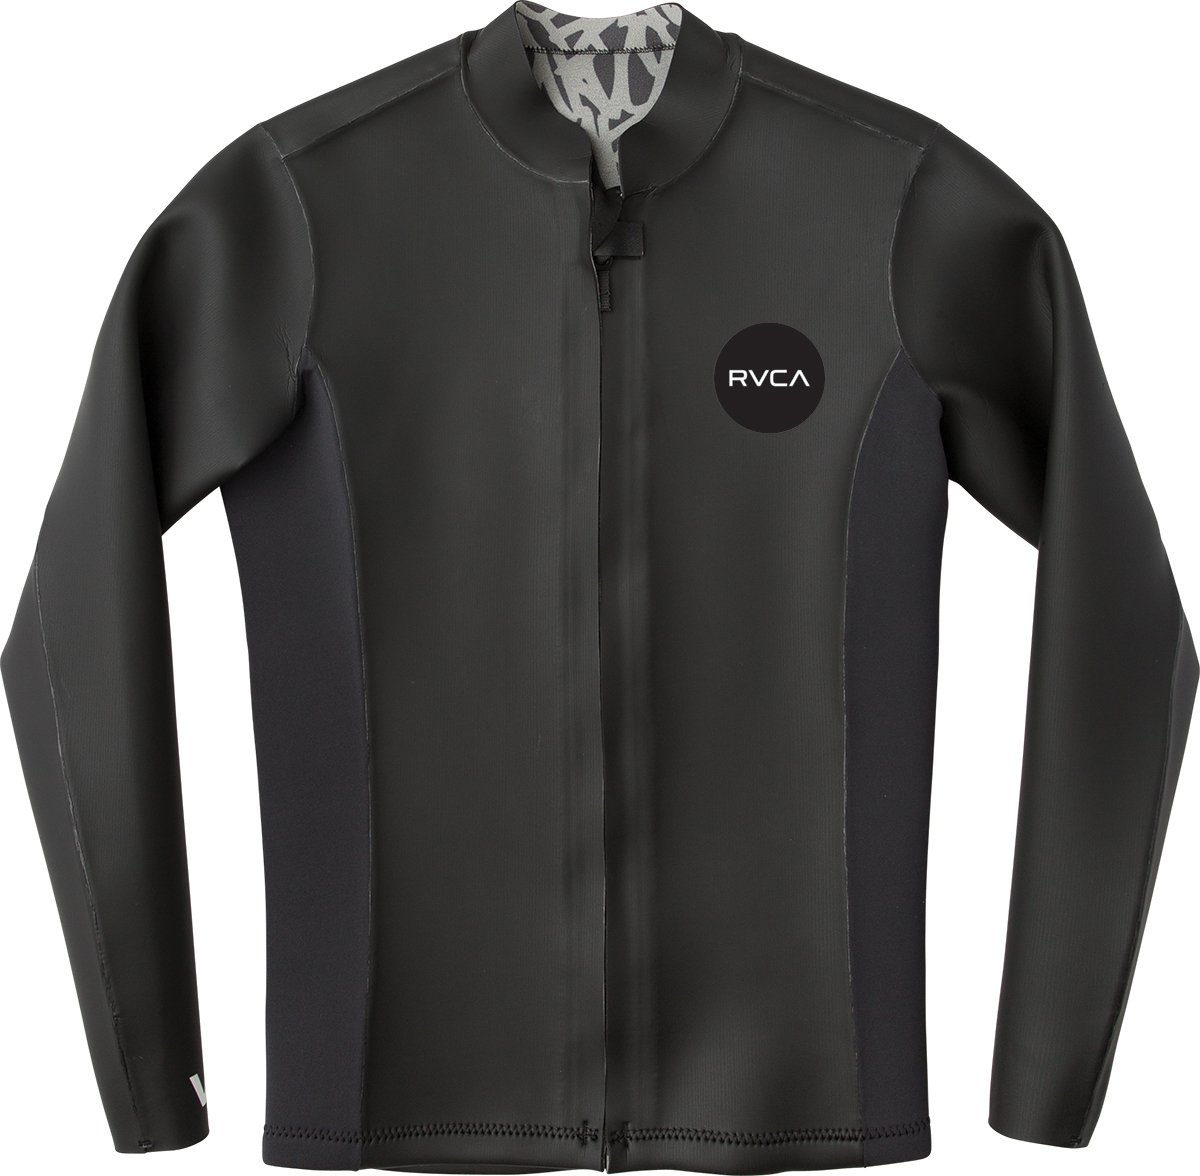 RVCA Men's Front Zip Smoothie Wetsuit Jacket, Black, L by RVCA